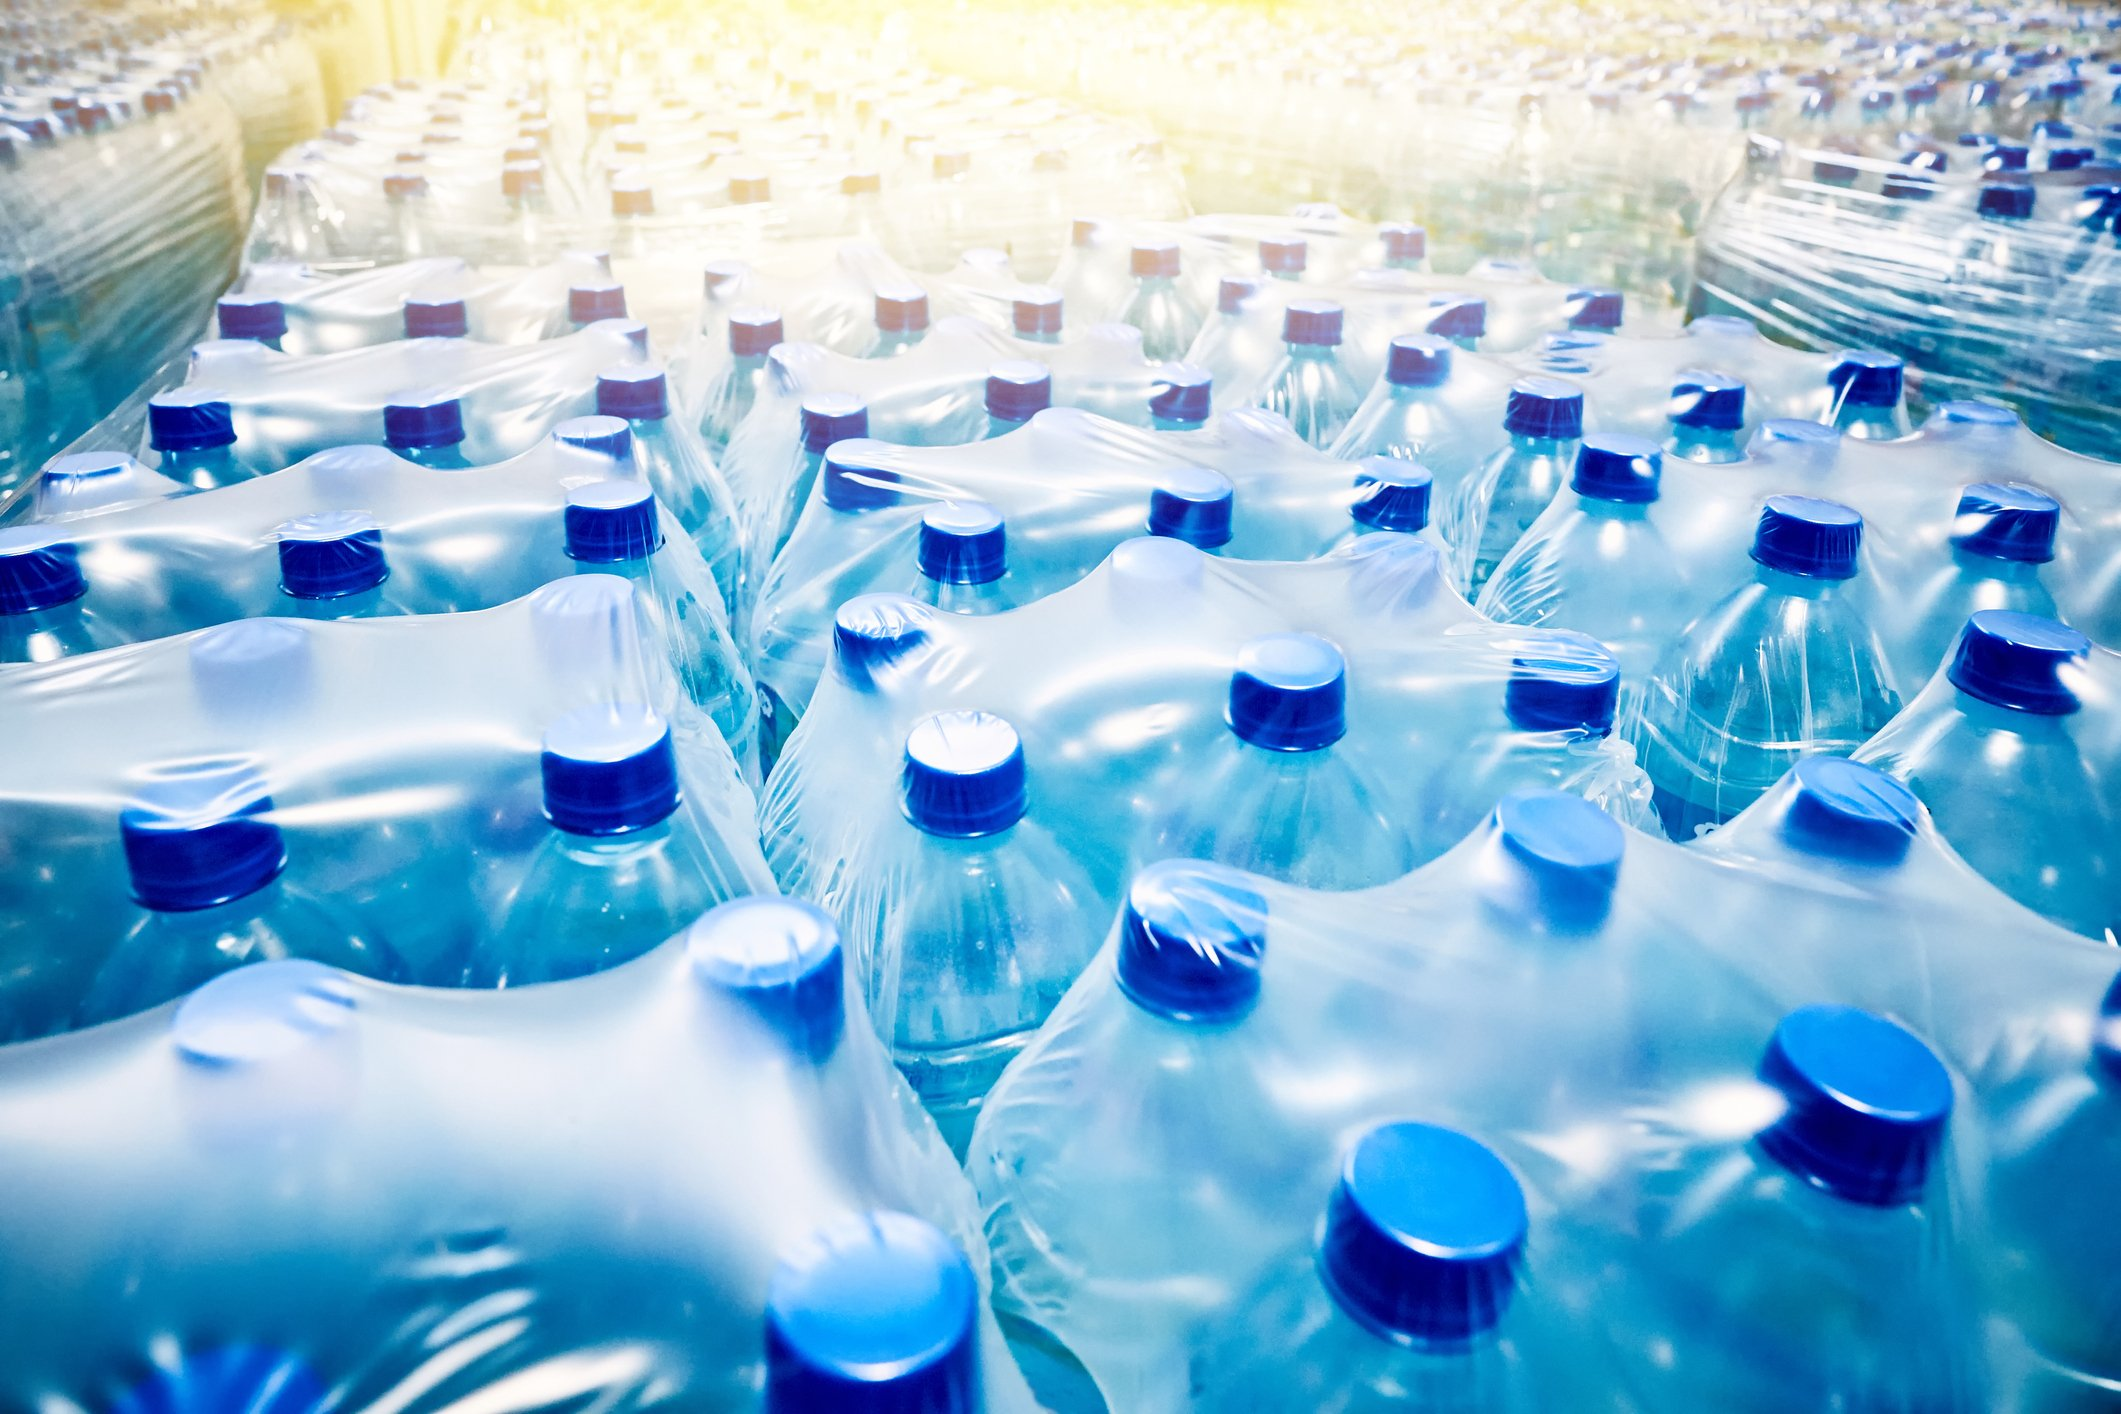 Many packaged blue mineral water bottles